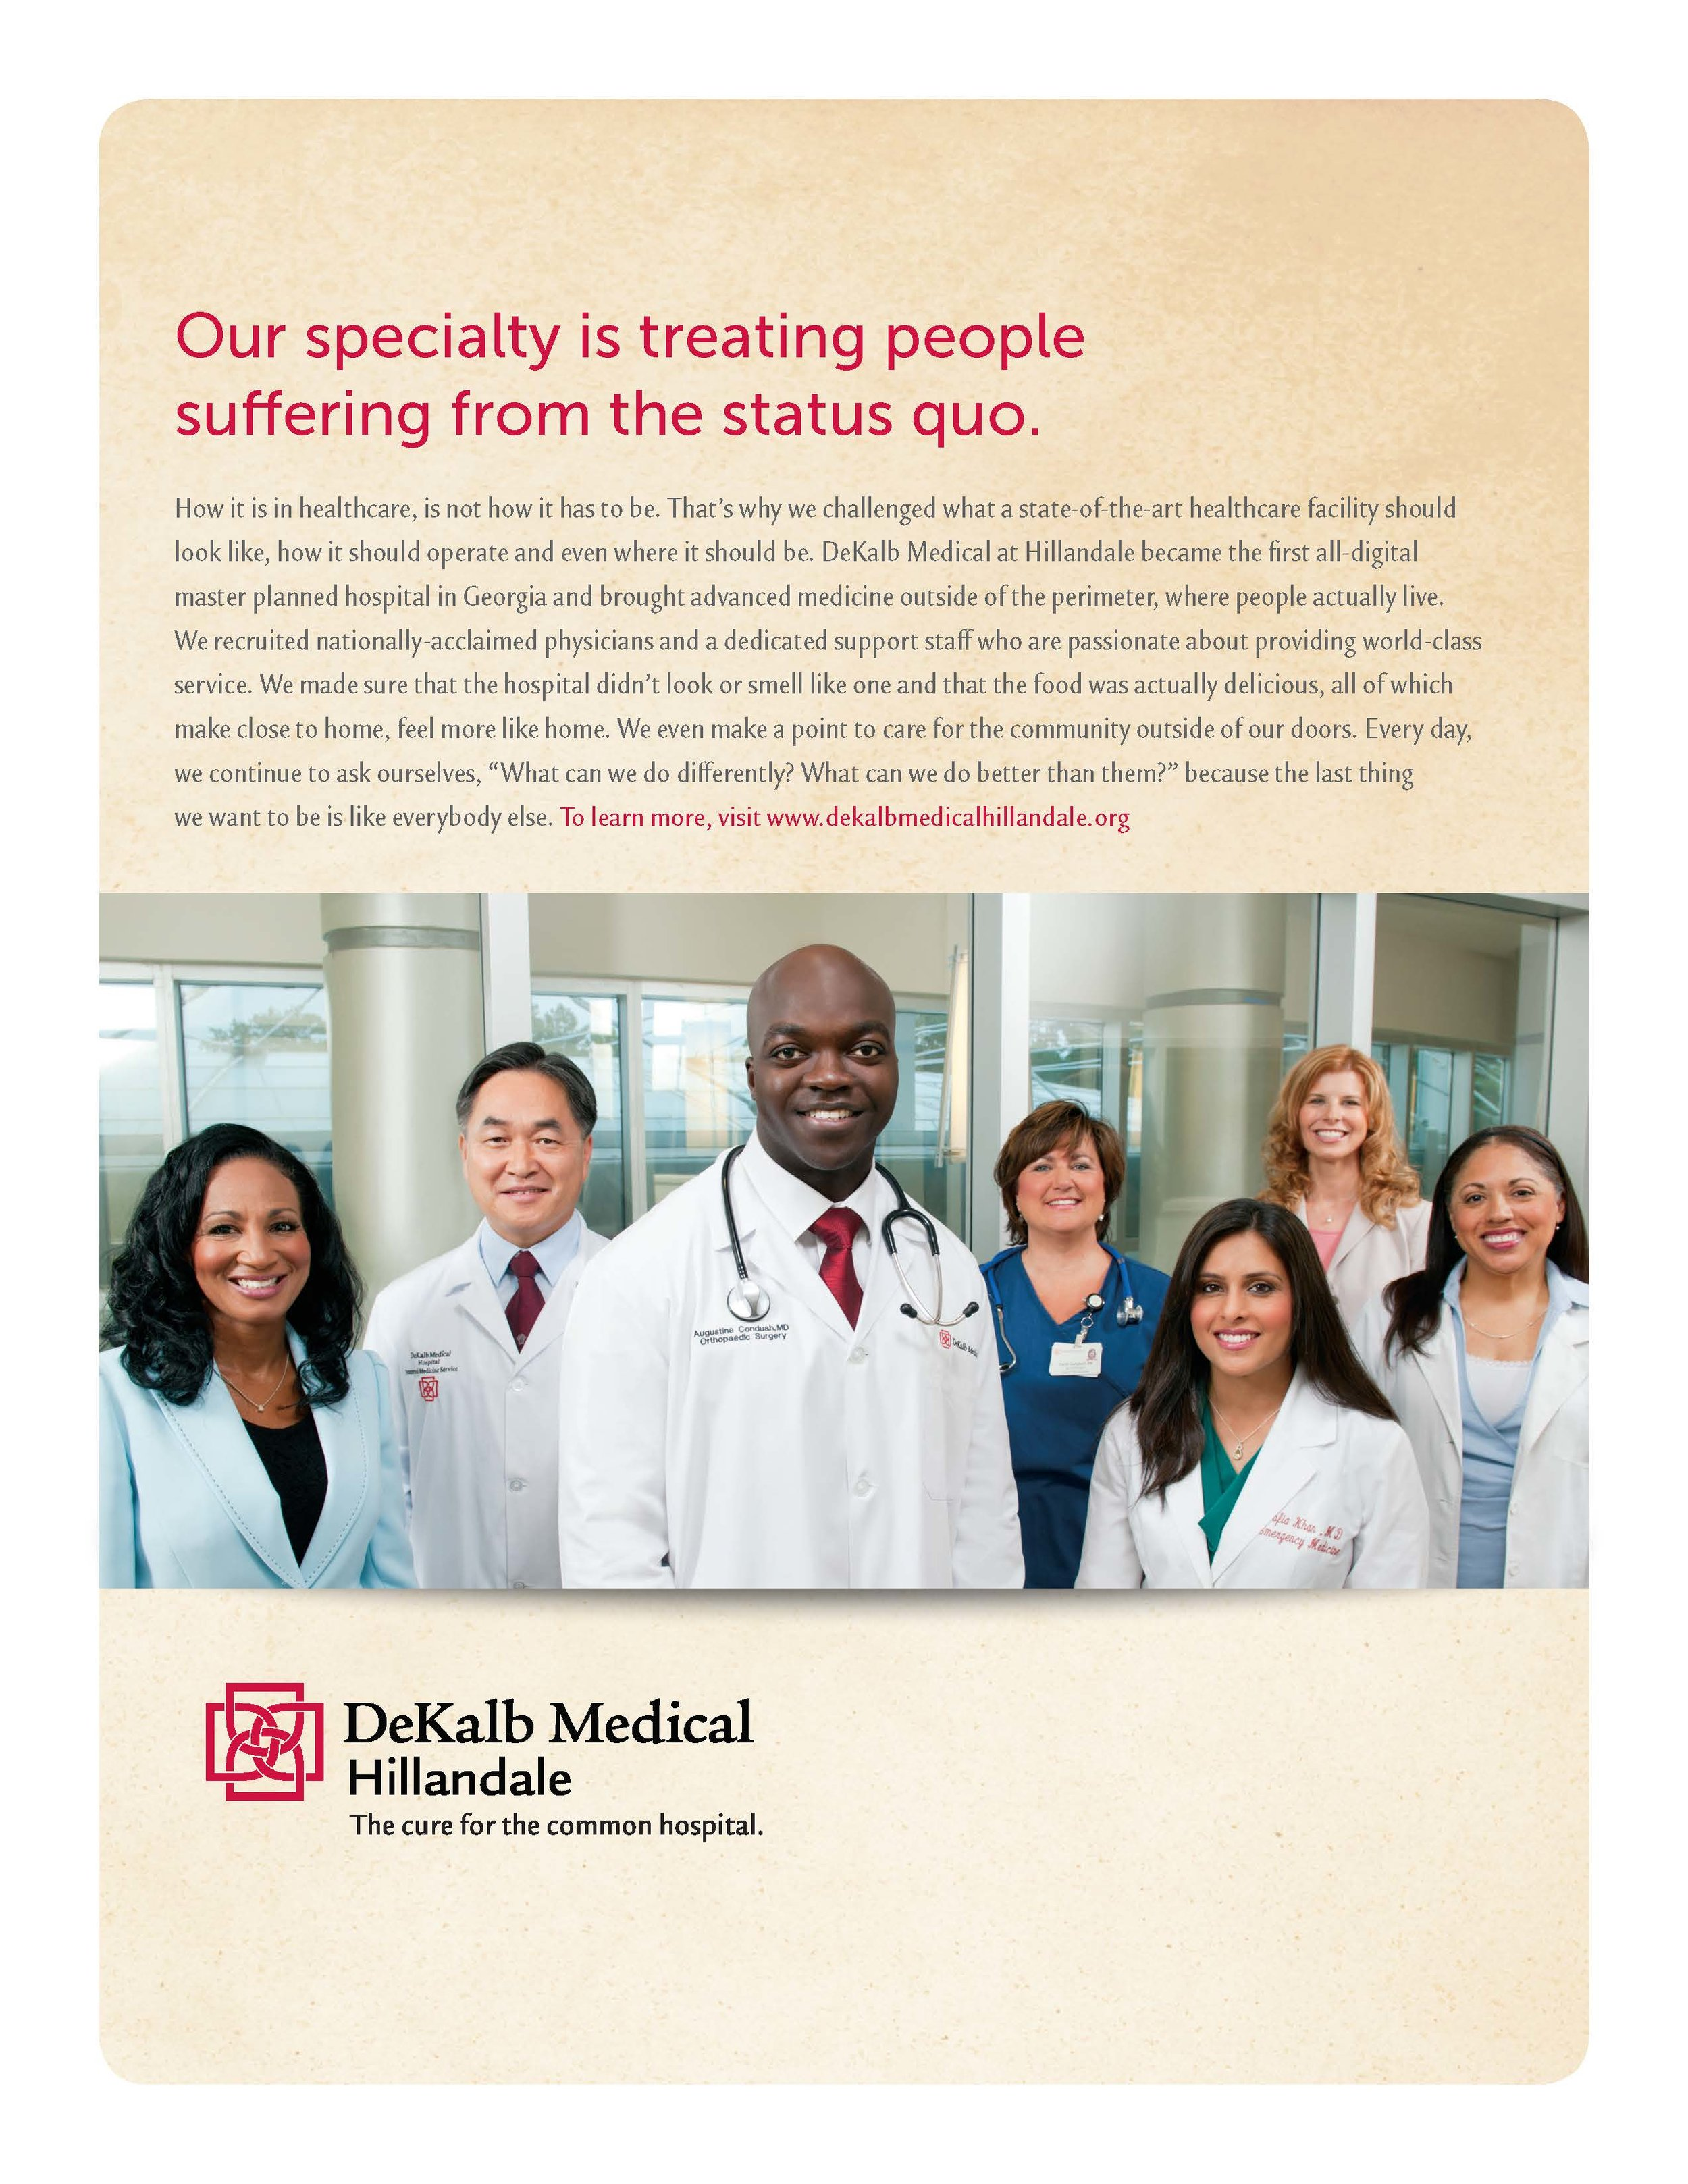 DeKalb-Medical_Hillandale_2 Print Ads_Page_1.jpg